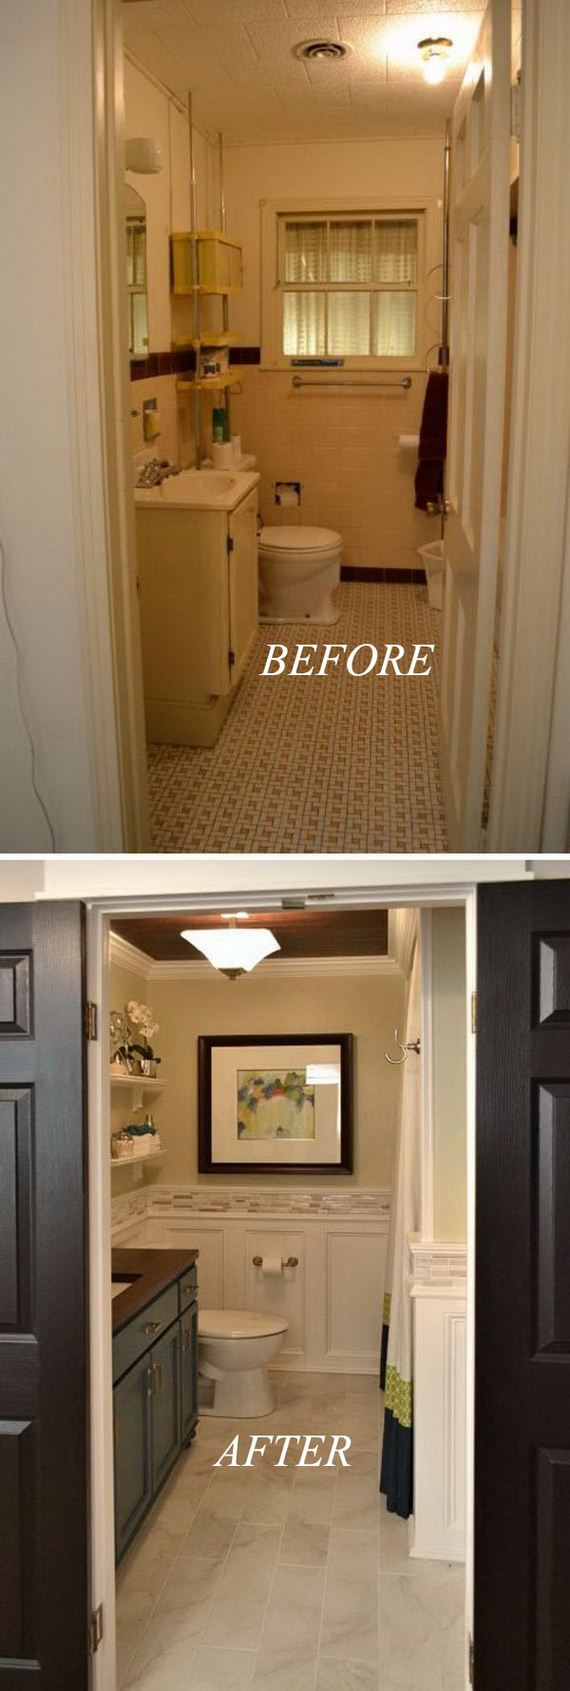 28-awesome-bathroom-makeovers